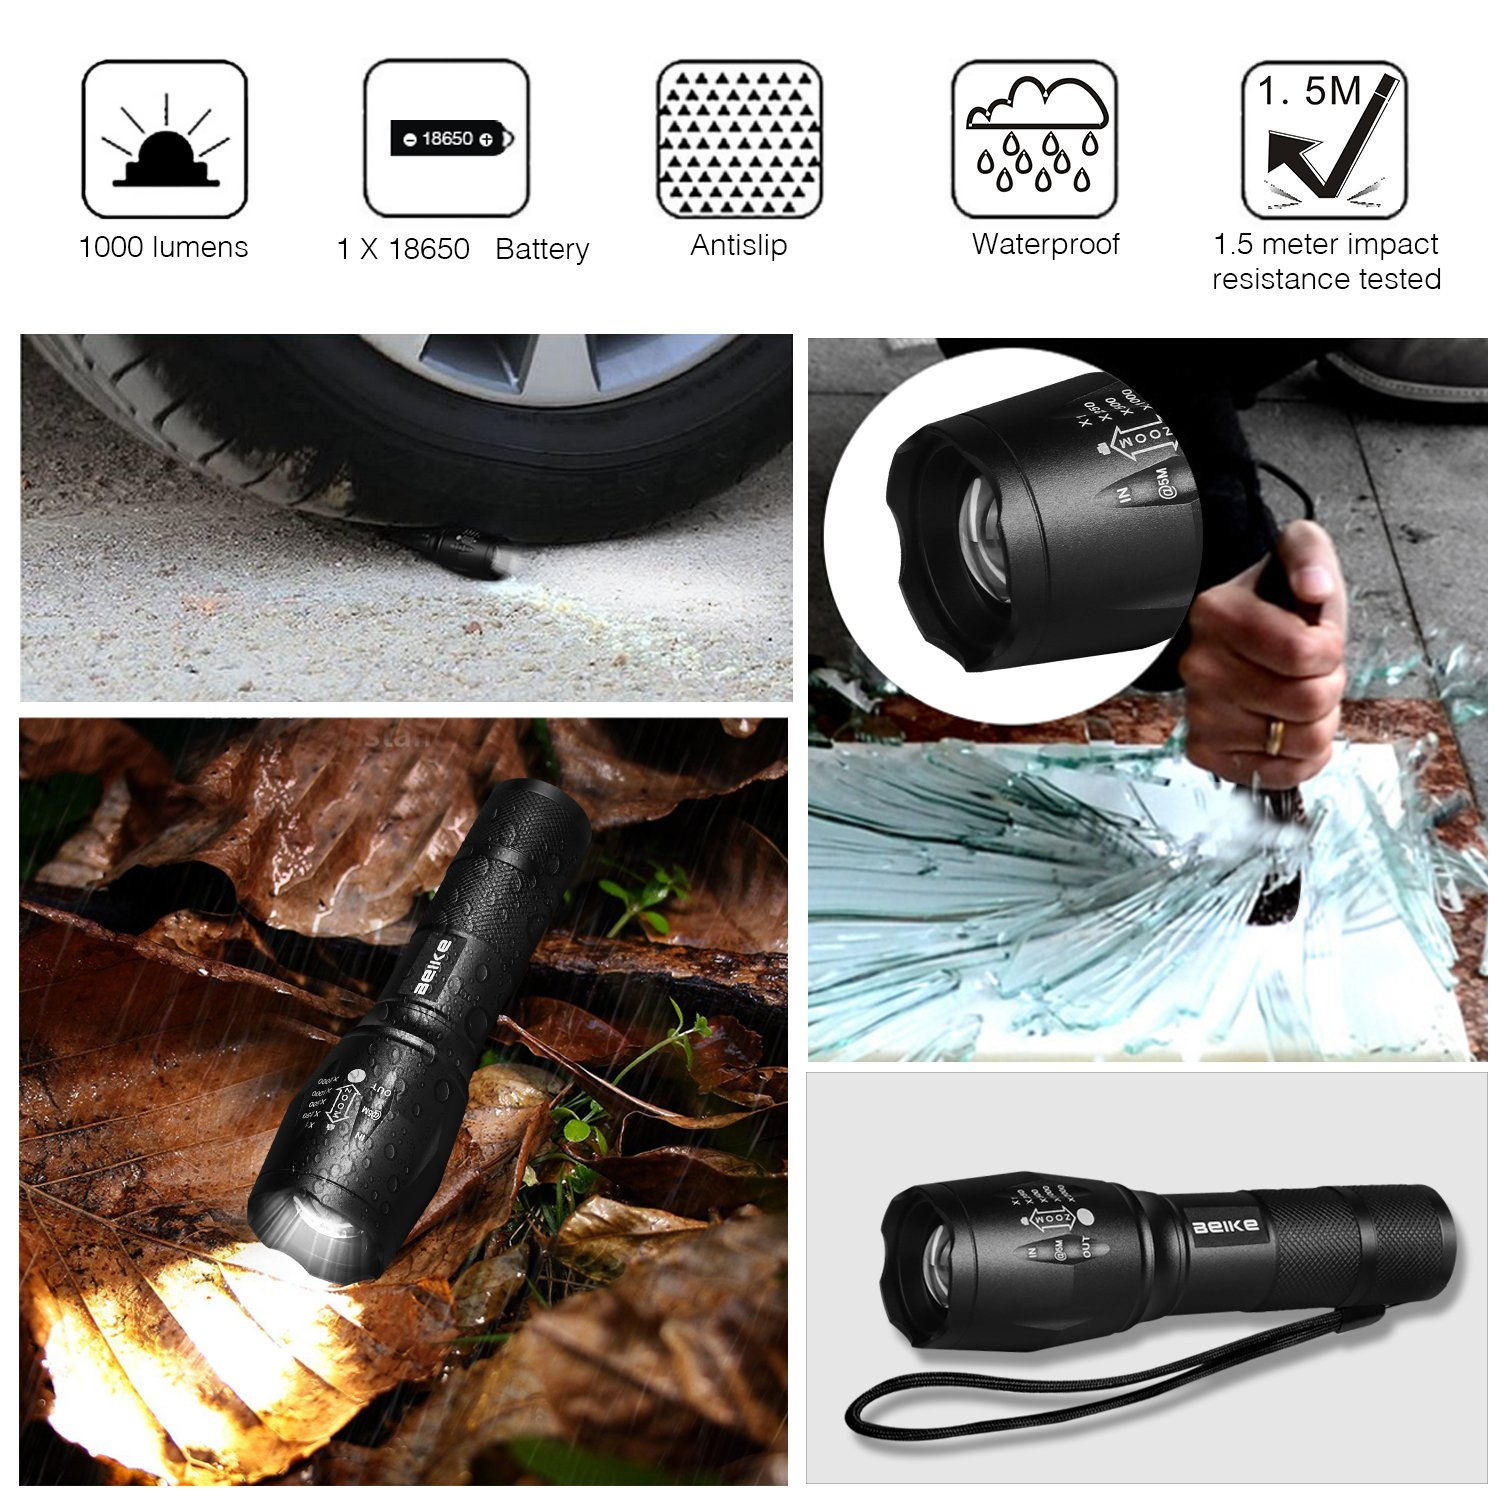 Beike 2 Pack 1000 lumens Tactical Flashlights, Super Bright Handheld Outdoor CREE LED Torch Flashlight with Adjustable Focus 5 Light Modes for Camping Hiking Emergency(AAA Batteries Included) by Beike (Image #4)